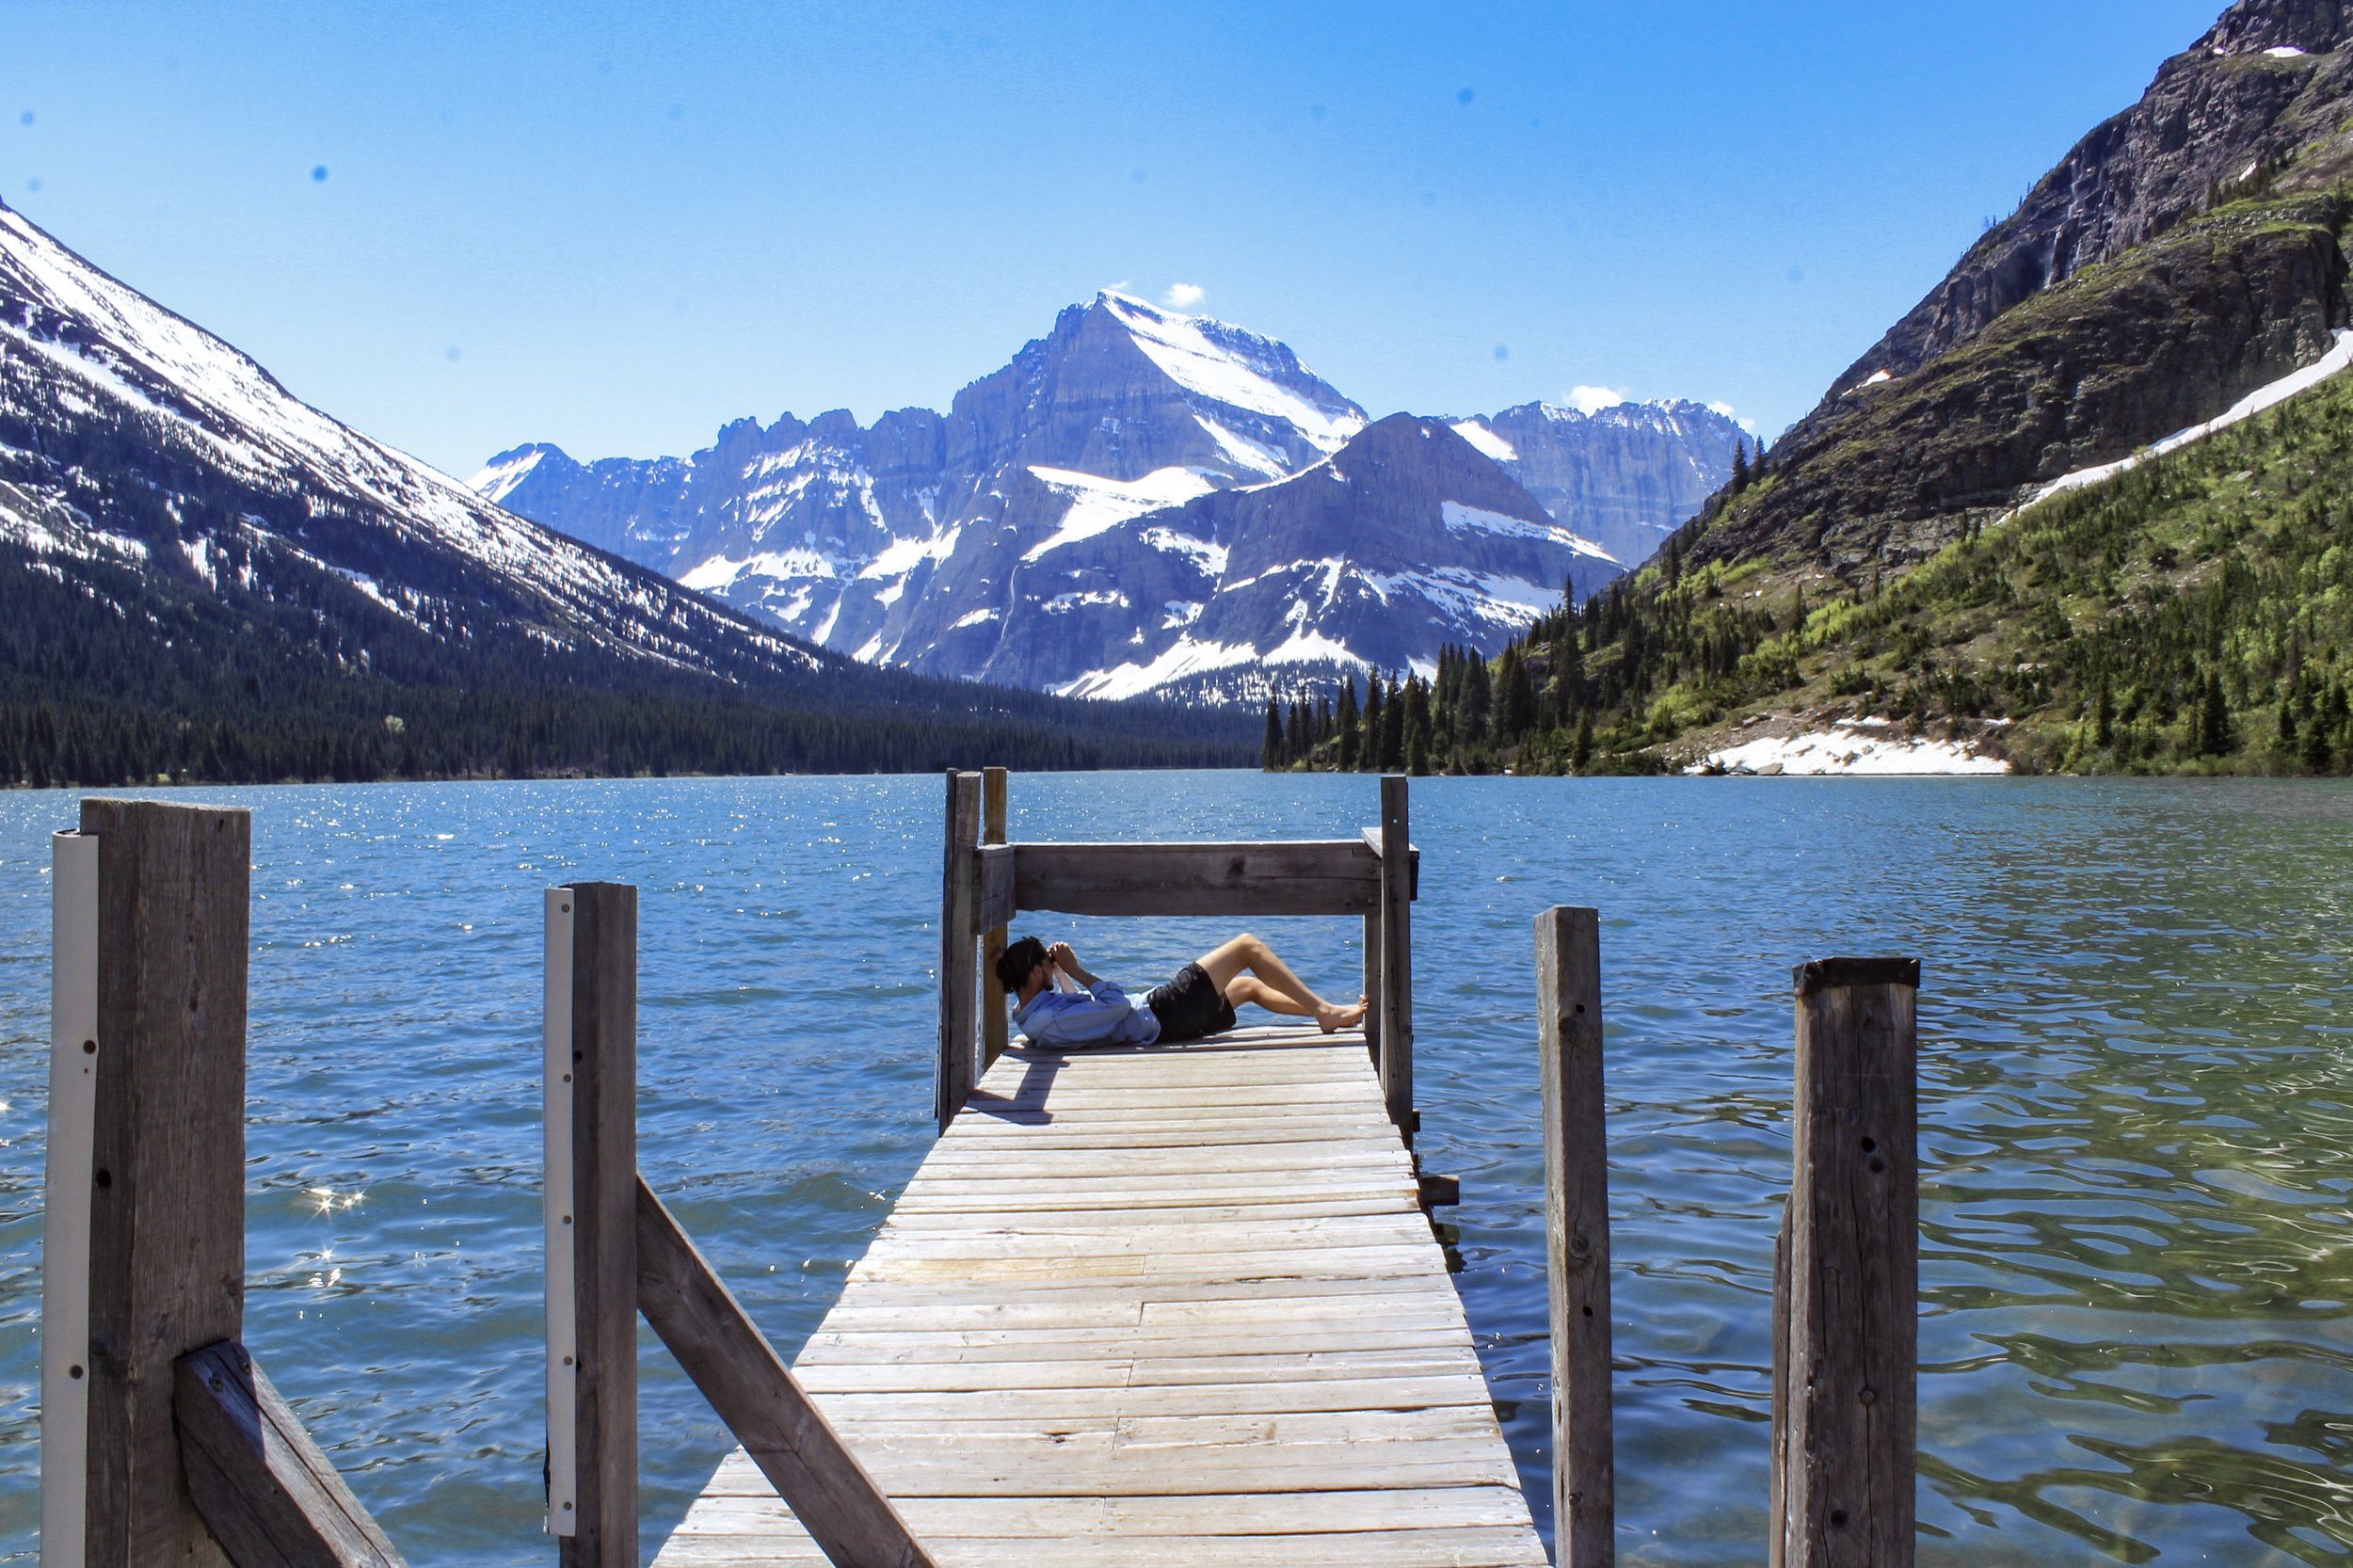 Relaxing on the boat dock at Lake Josephine in the Many Glacier region